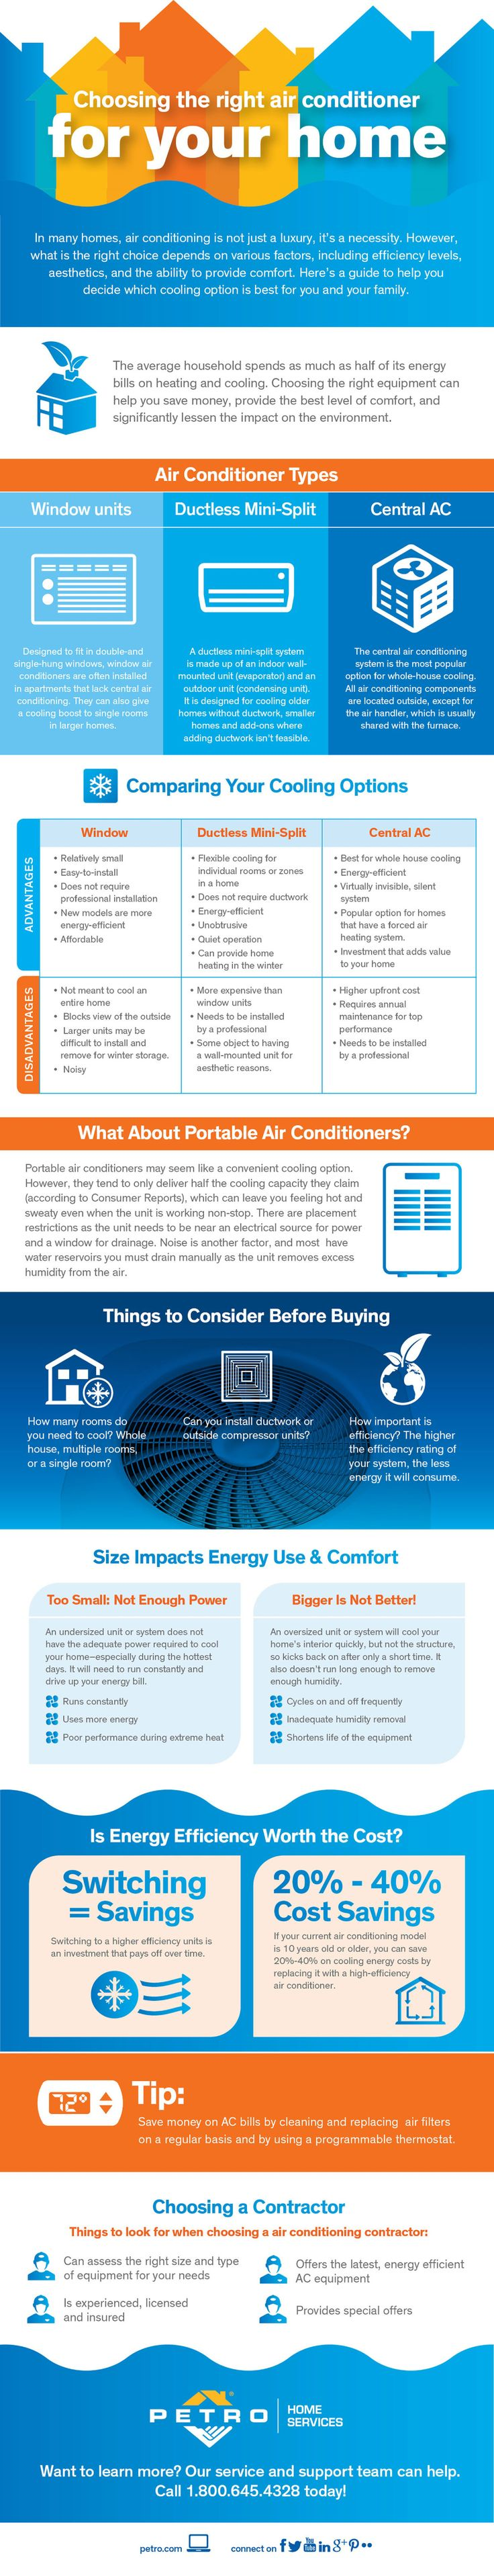 Choosing and maintaining your AC unit shouldn't be a hassle. Click on the image to read our full article on finding the best system for your home.